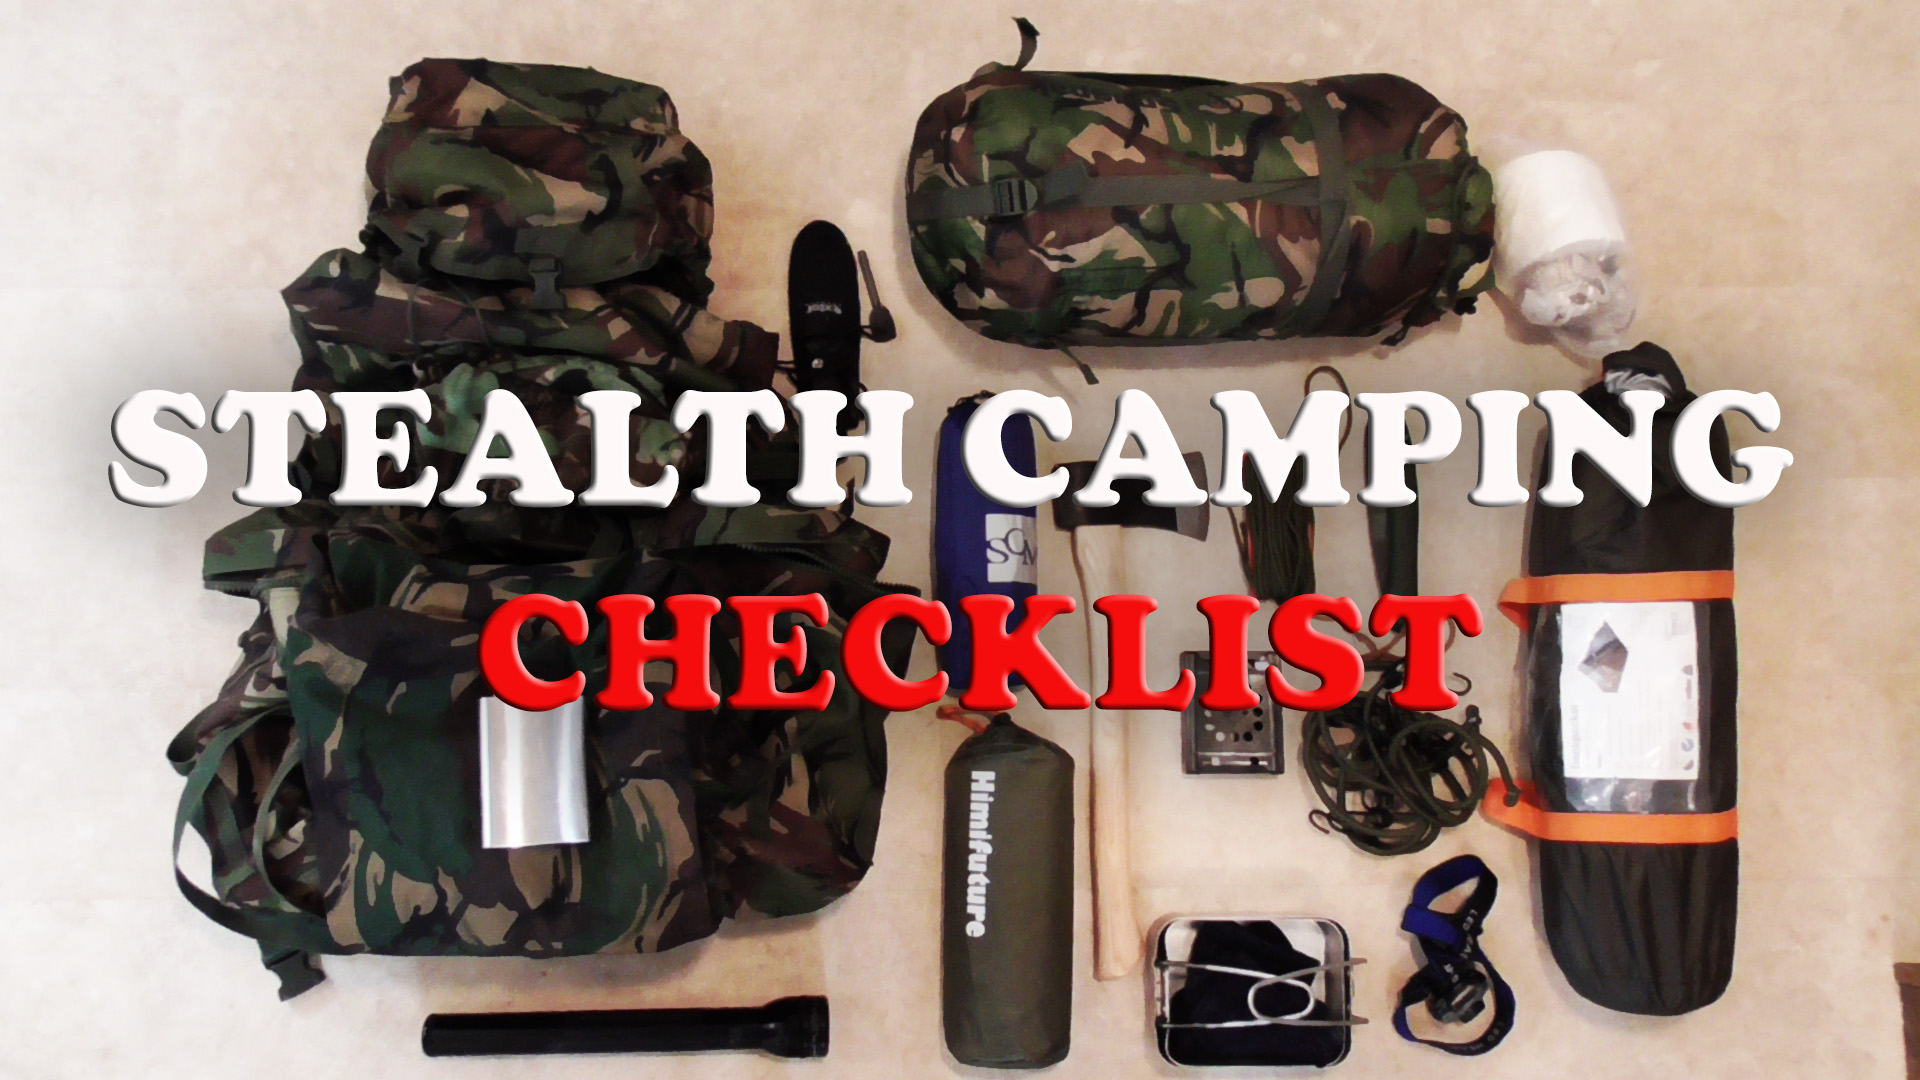 stealth camping checklist